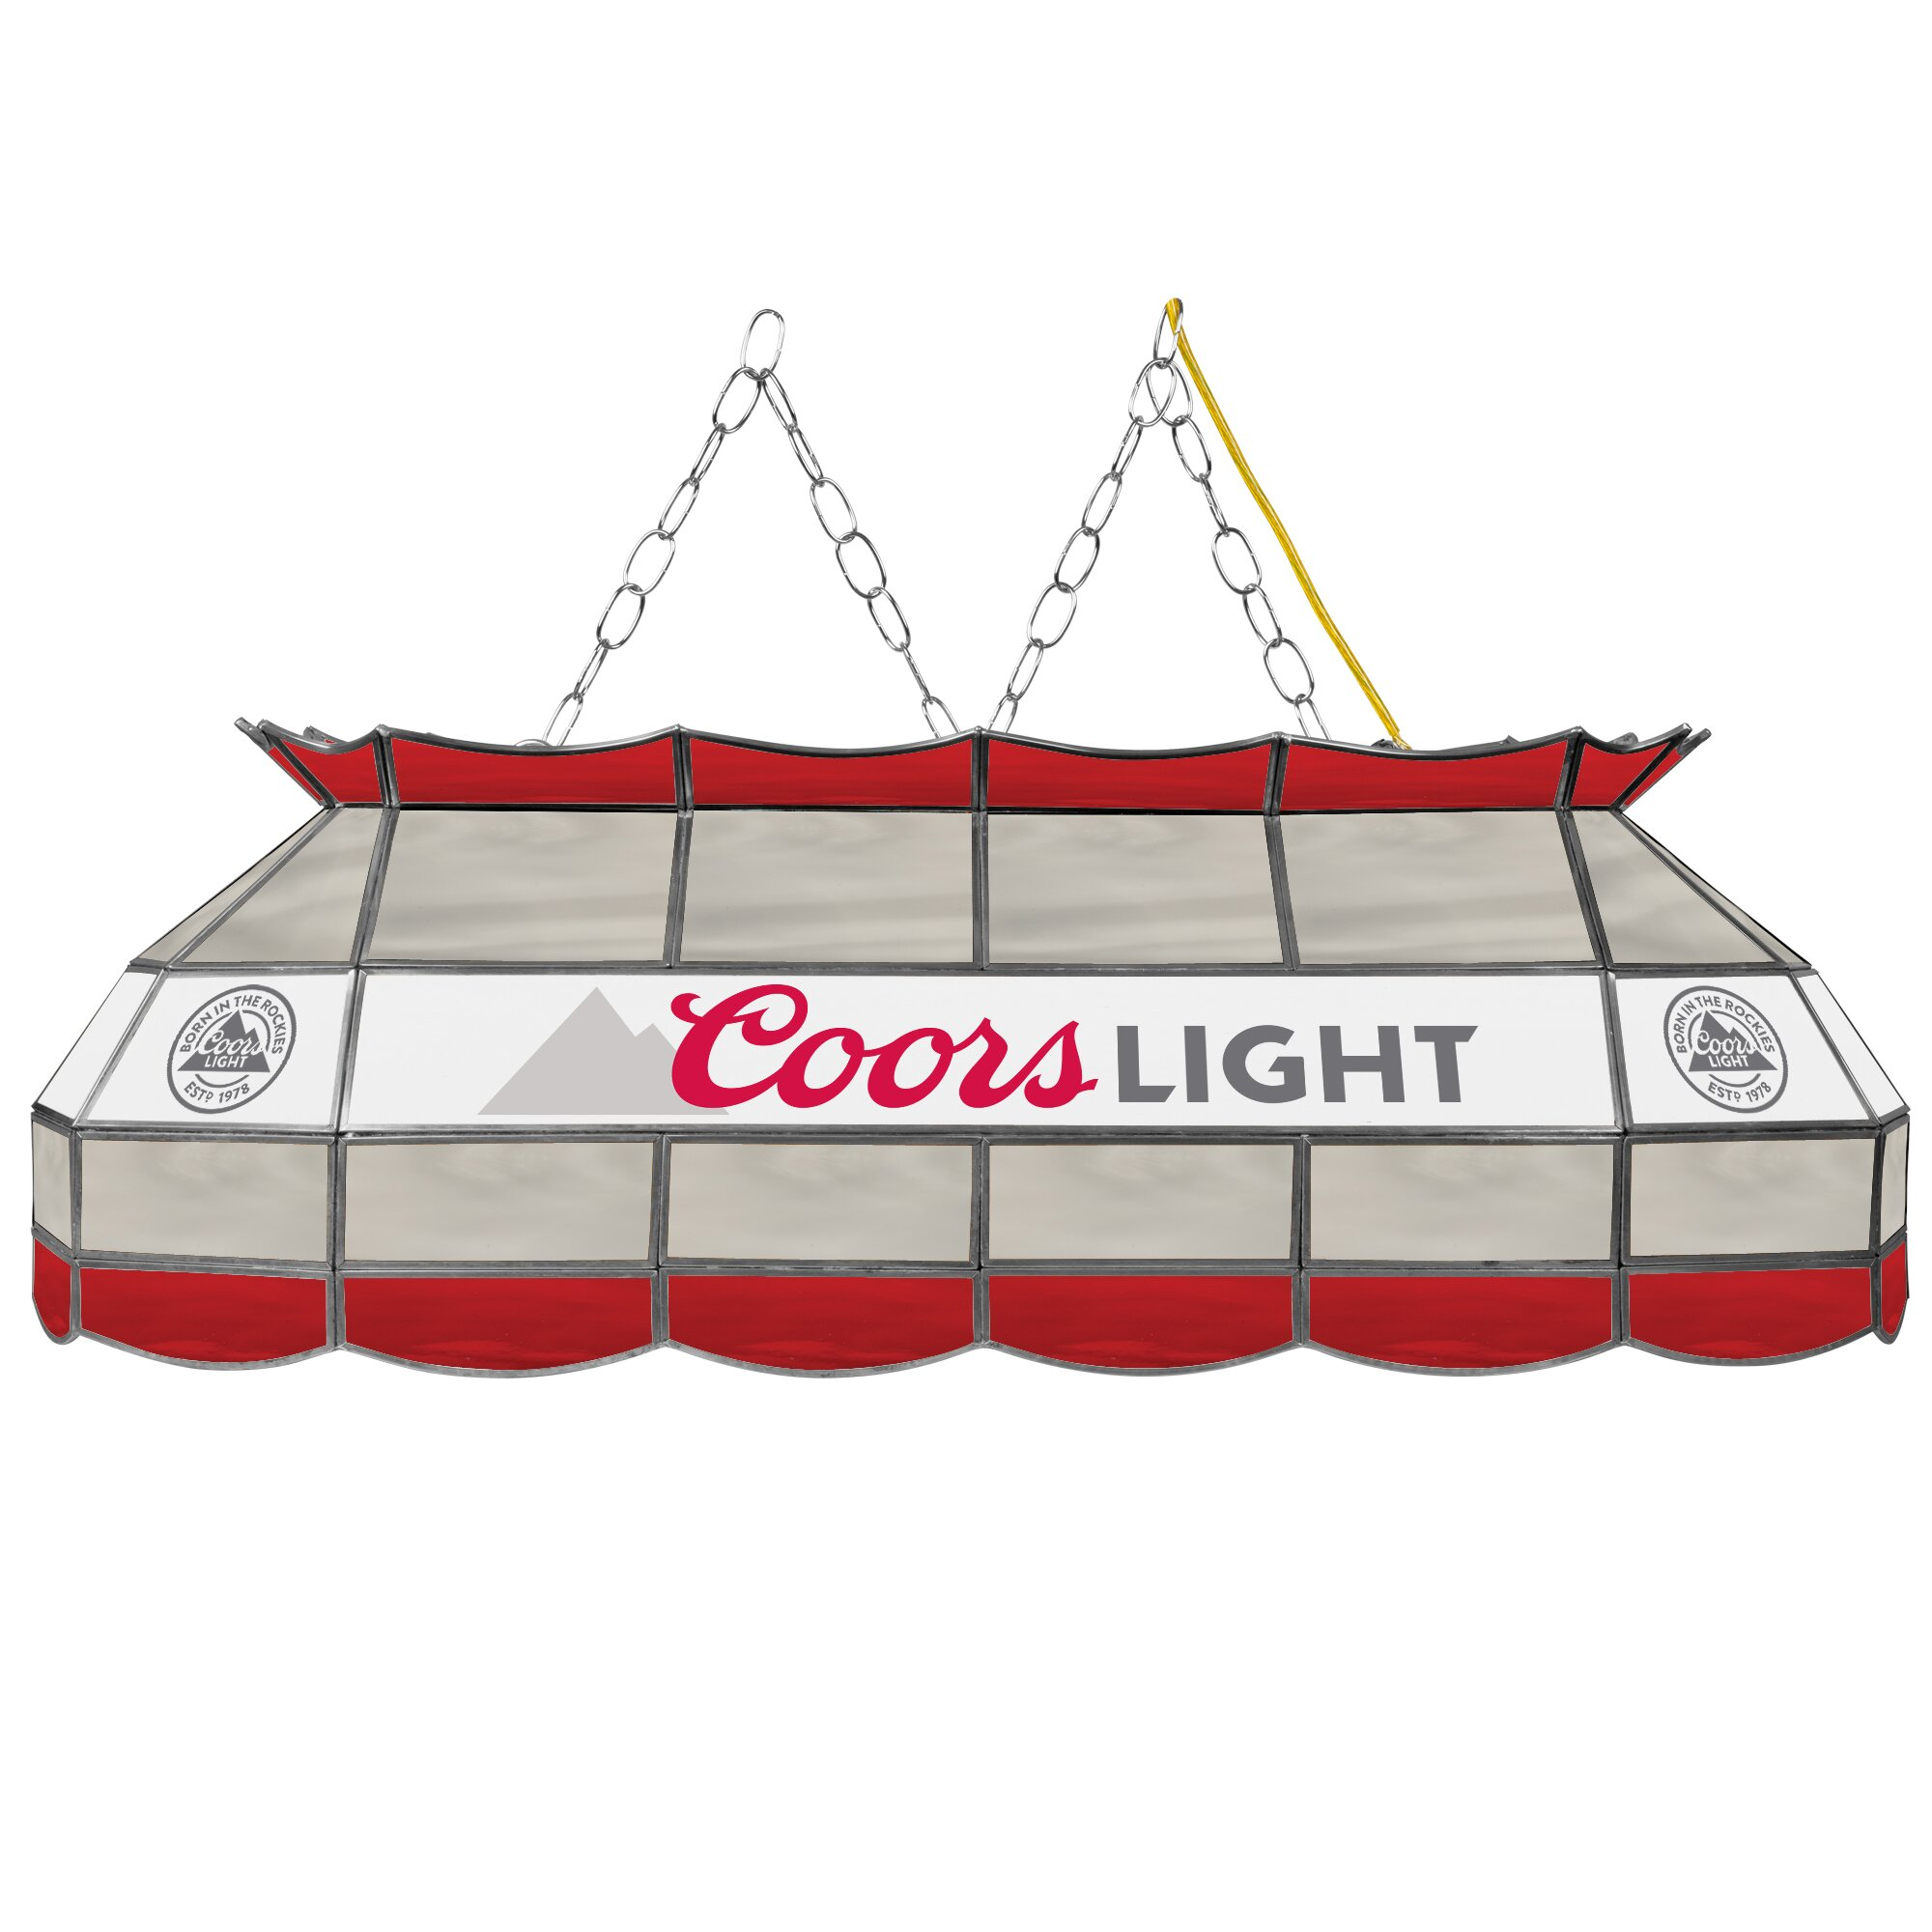 Coors Light Stained Glass Pool Table Light: 3 Light Pool Table Light